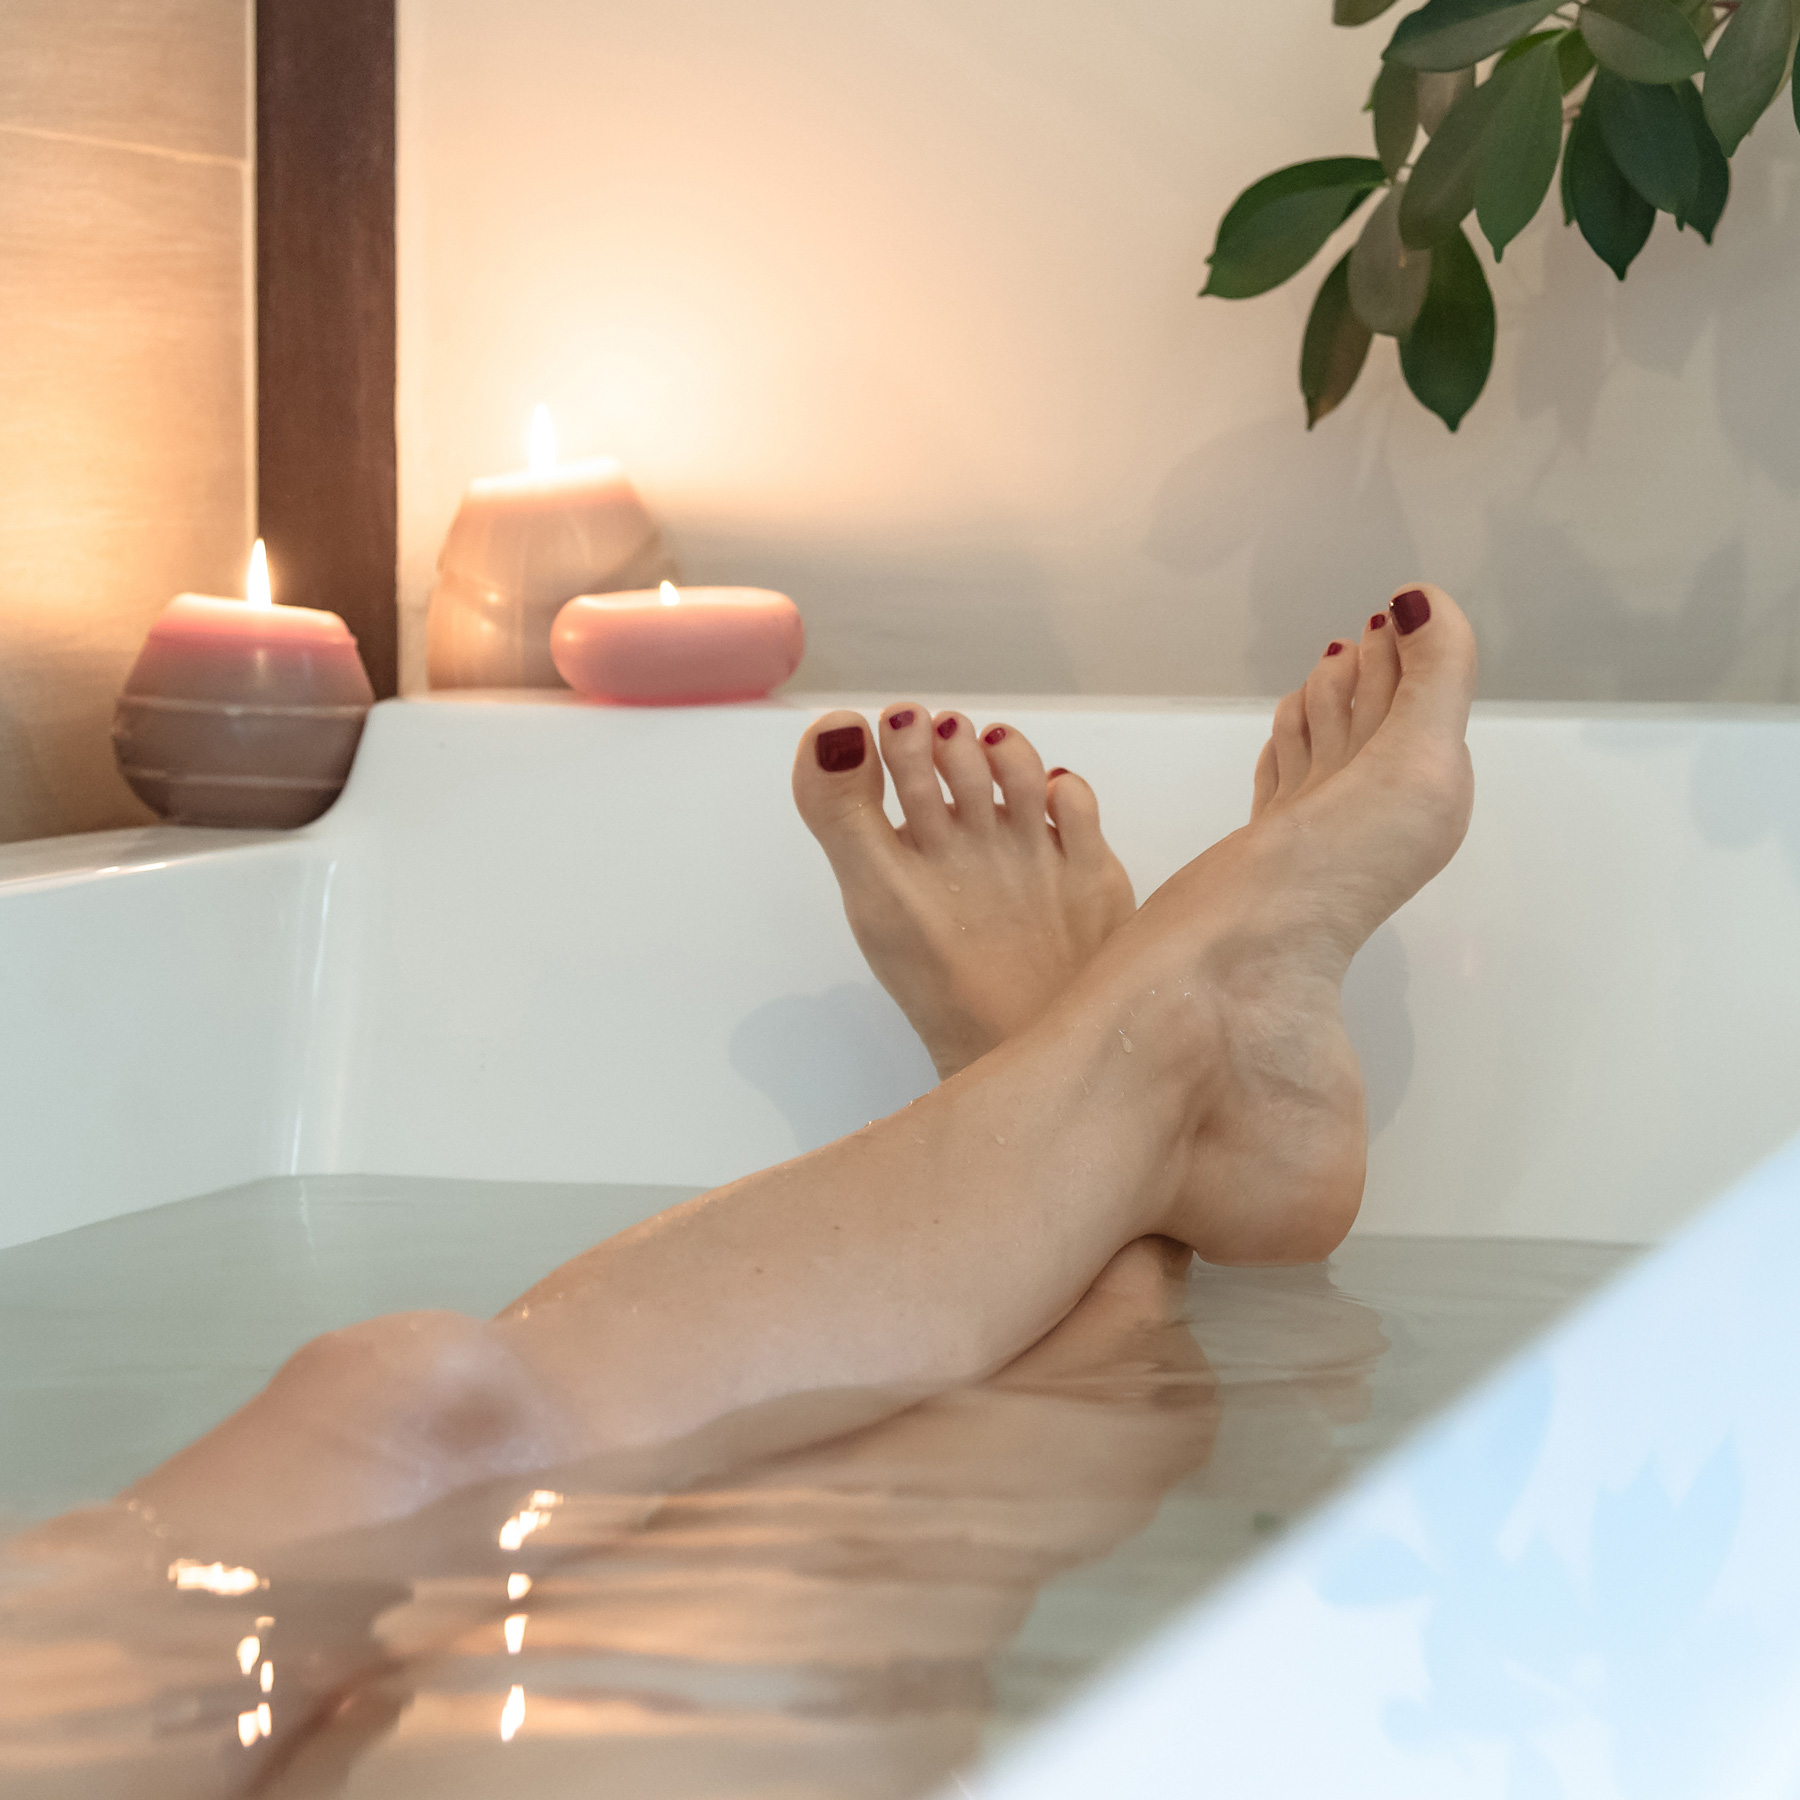 Ways to Be Healthy: woman taking a bath